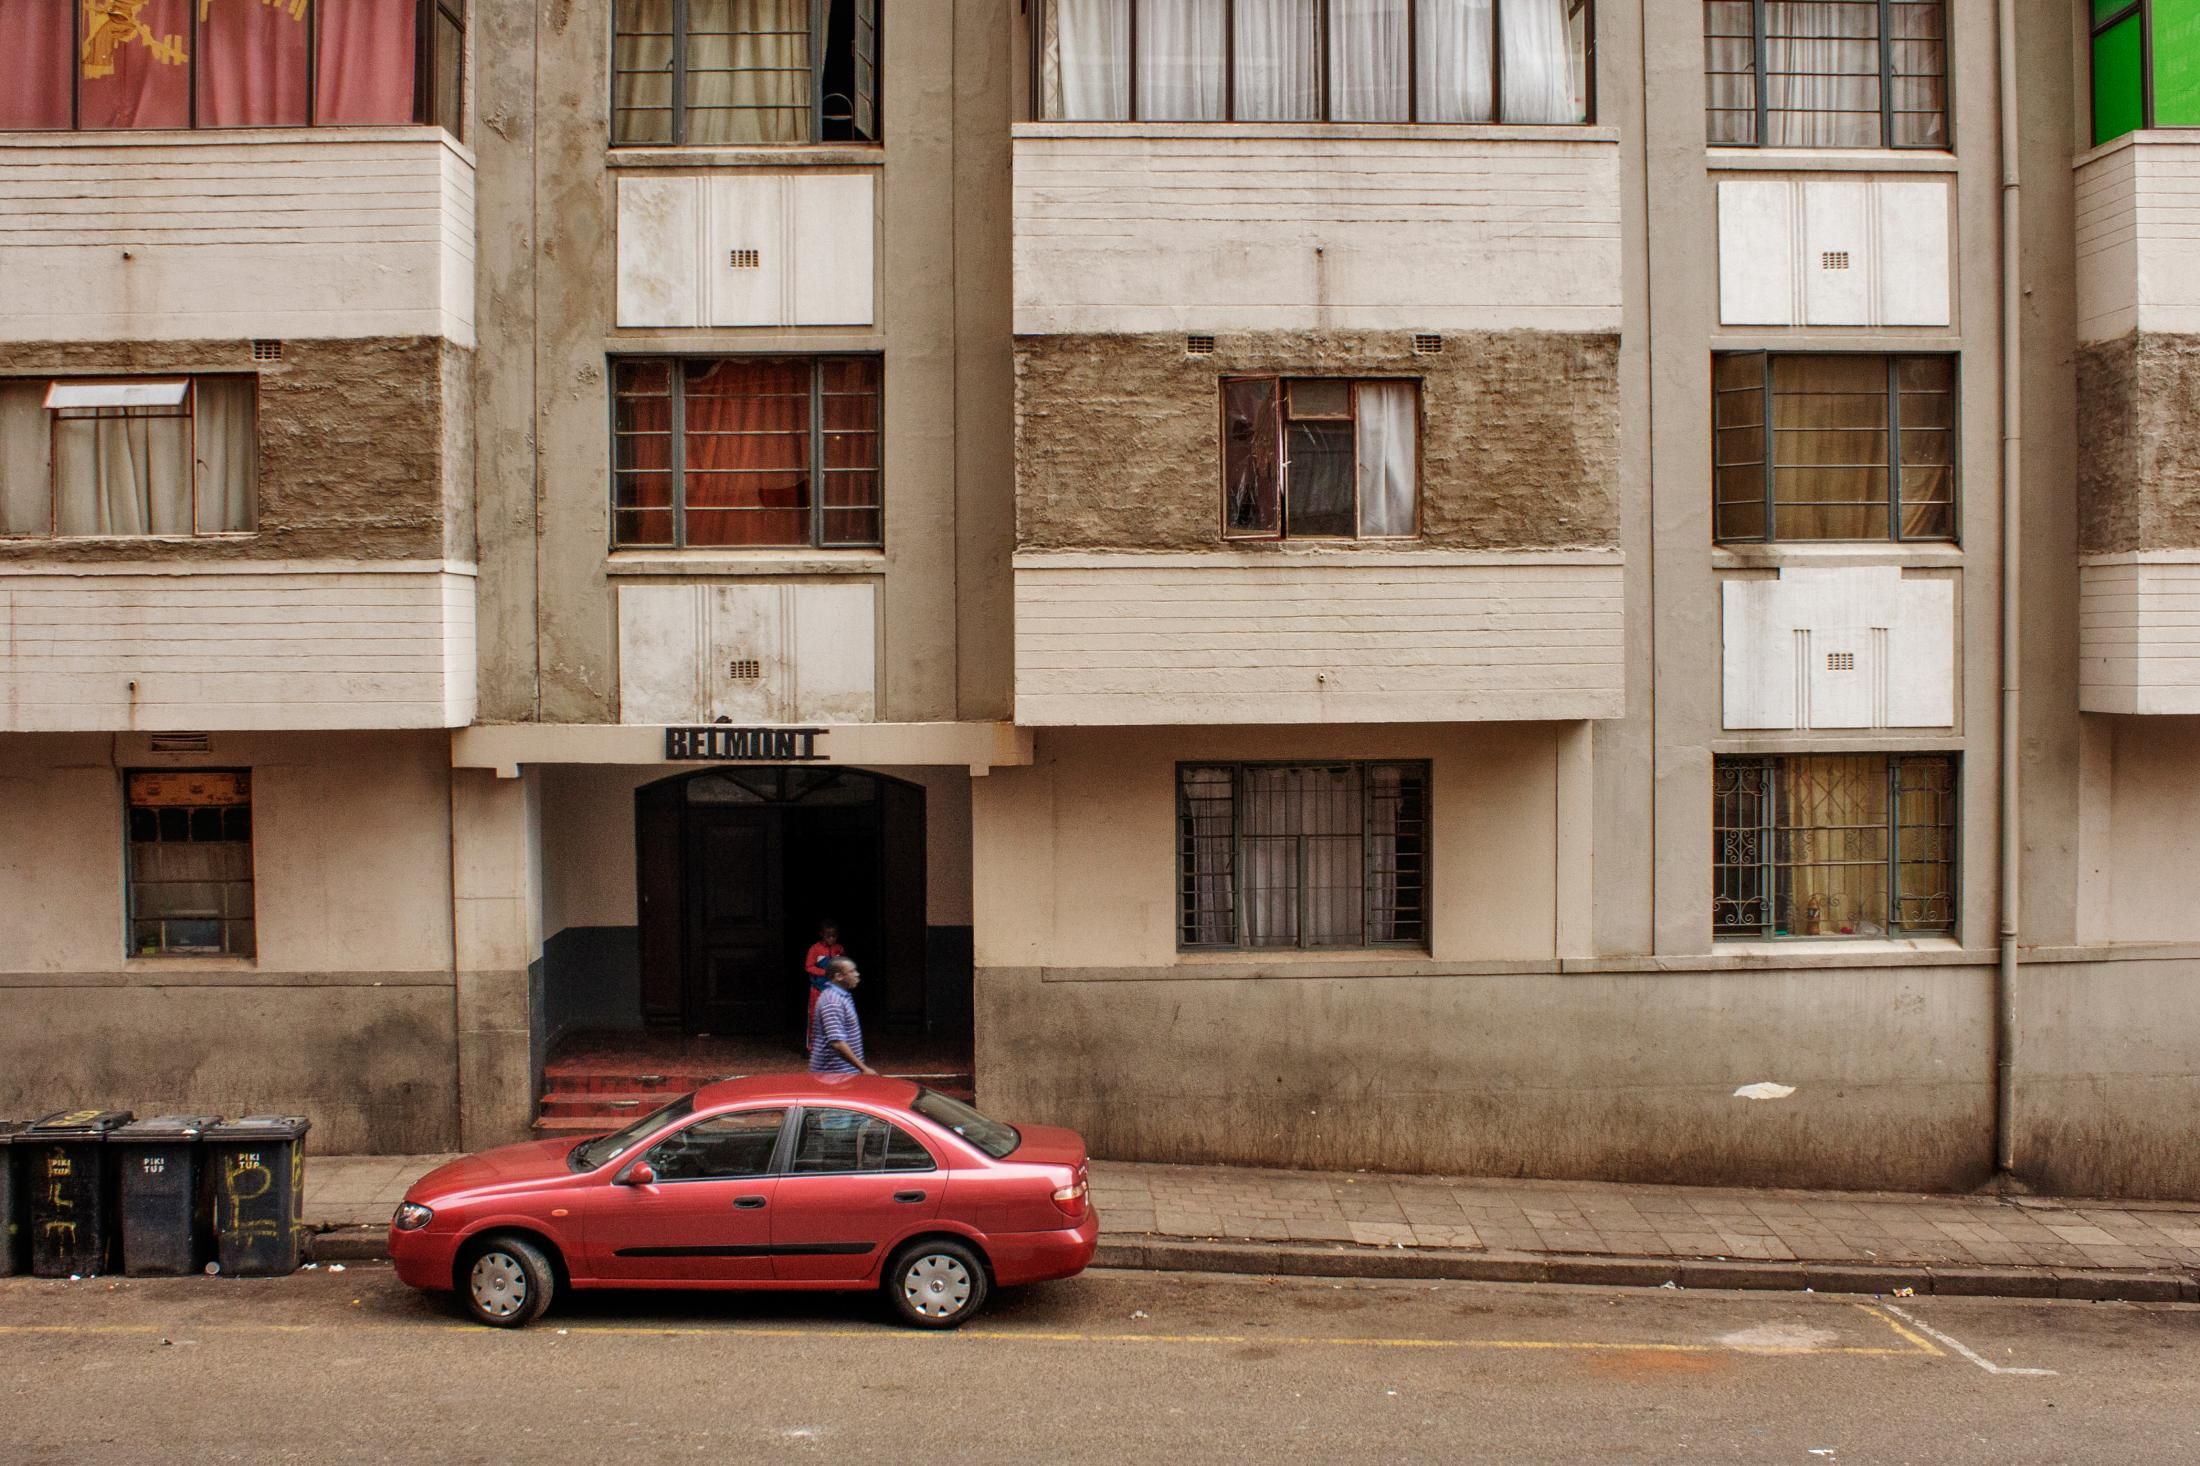 "A building with a bricks fault lines on corner Bankent and Varndermerwe street in Hillbrow in Johannesburg, Soputh Africa, Sept 06, 2016. This building was once known as Bell Mount Hotel now the balcony has bee reconstructed on top of a old structure as neighbourhood undergoing through transition and need of cheap accommodation. Hillbrow is an inner city residential neighbourhood of Johannesburg known for its high level of populationdensity, unemployment, poverty, prostitution and crime. This project ""Transition"" looks at the short and long-term changes that have occured and continue to occur in the area, and the effect of life here on the people."""